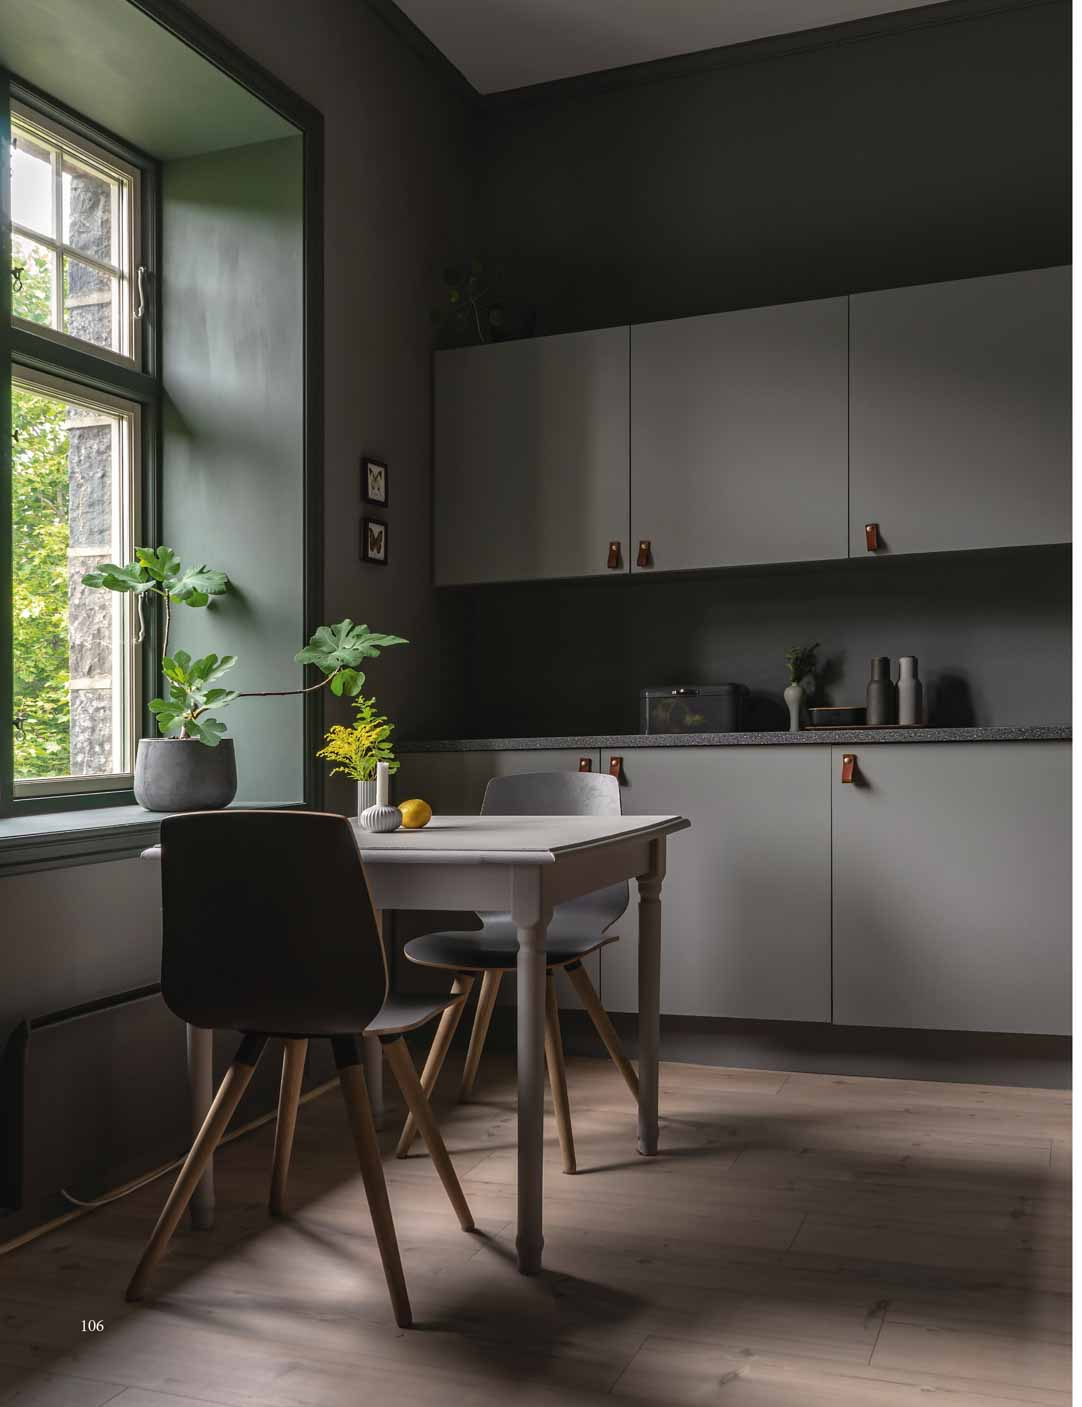 Kitchen in Earth Stone, Black Hills and Oyster Grey